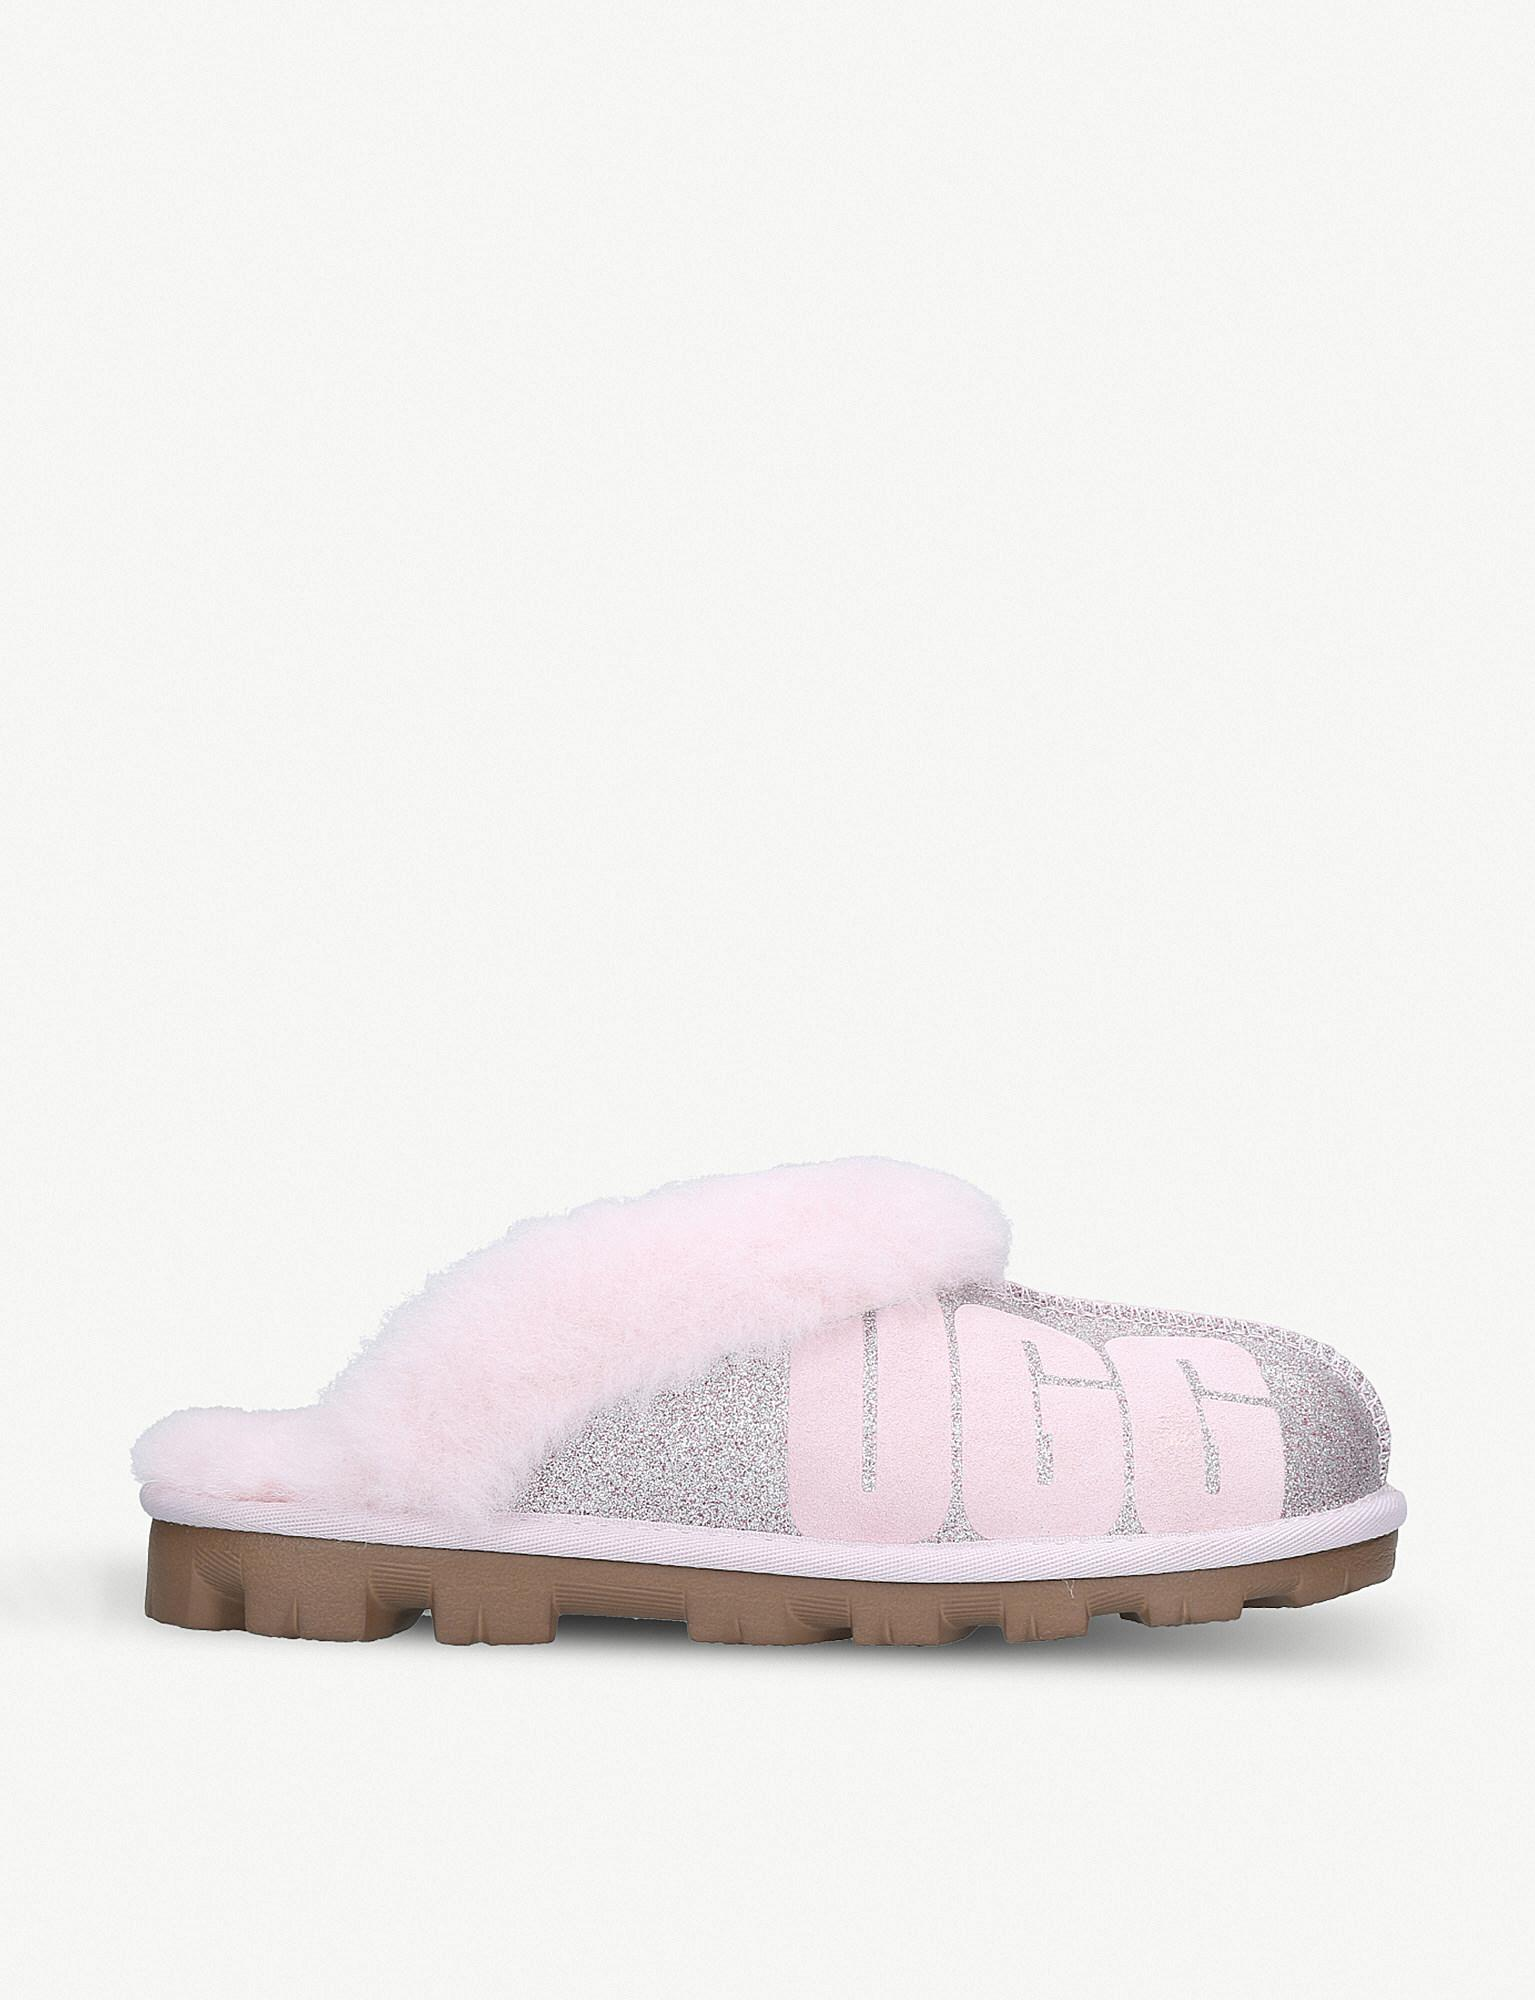 63967a9e6bd Ugg Pink Coquette Sparkle Suede And Sheepskin Slippers